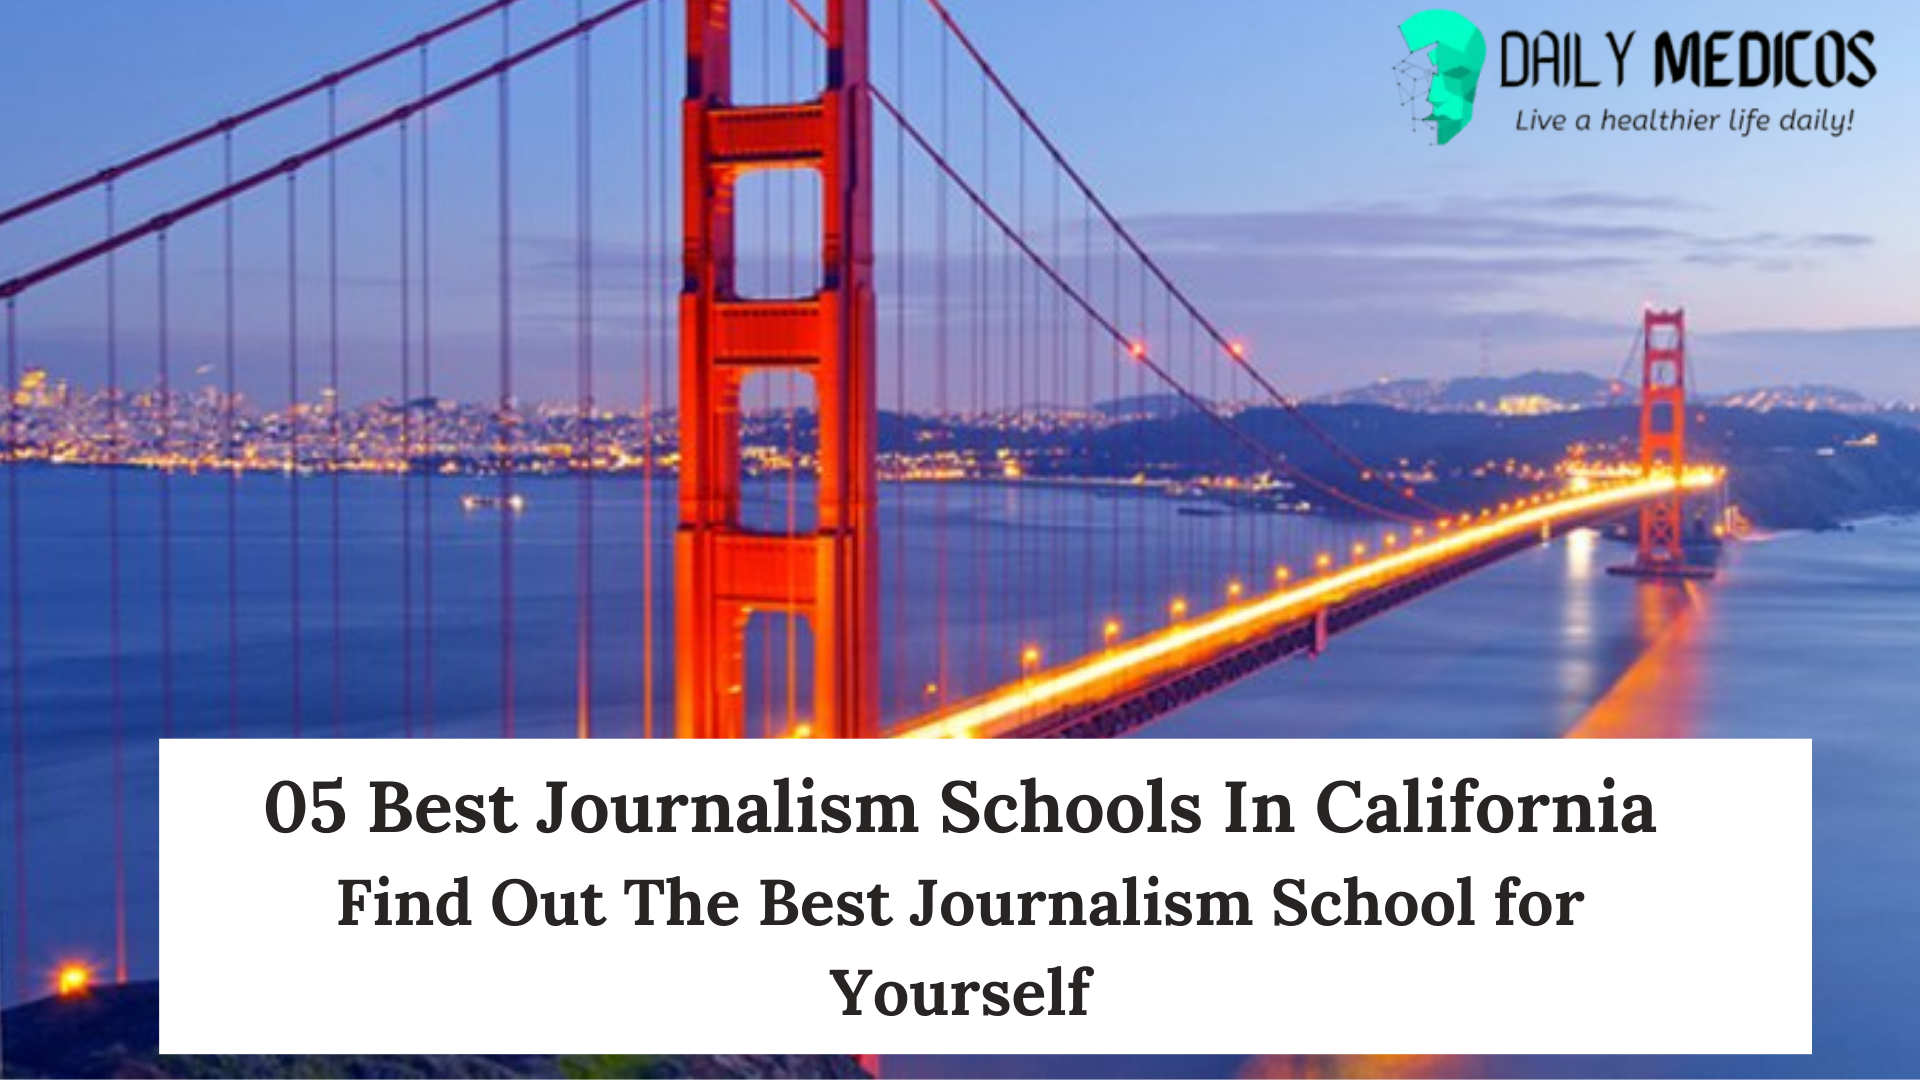 05 Best Journalism Schools In California [Find Out The Best Journalism School for Yourself] 7 - Daily Medicos